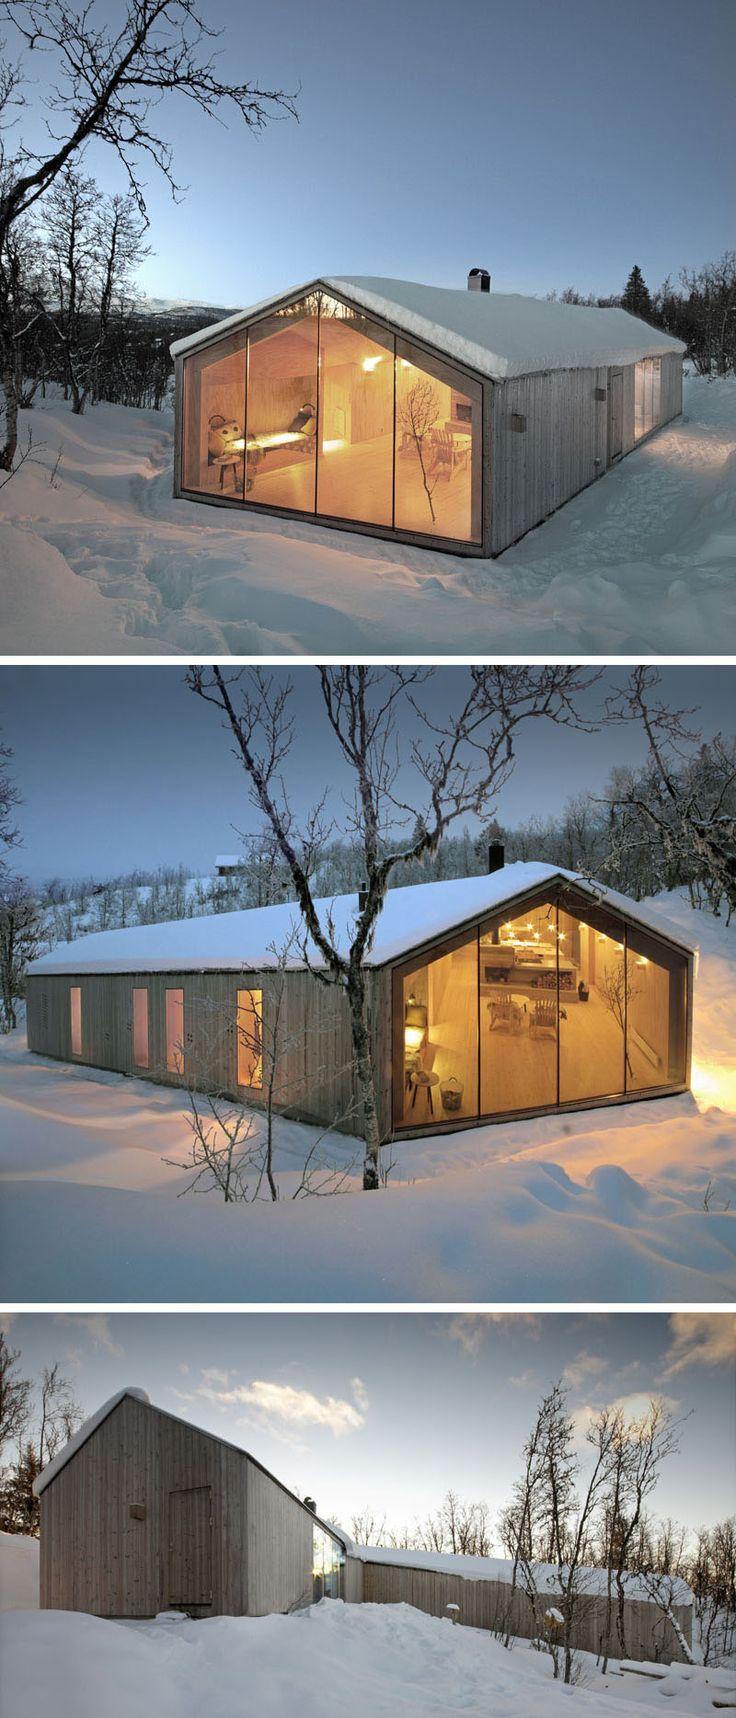 19 Examples Of Modern Scandinavian House Designs   Light wood siding and large floor to ceiling windows keep both the exterior and interior of this holiday home bright and welcoming while also allowing it to blend into the natural surroundings.